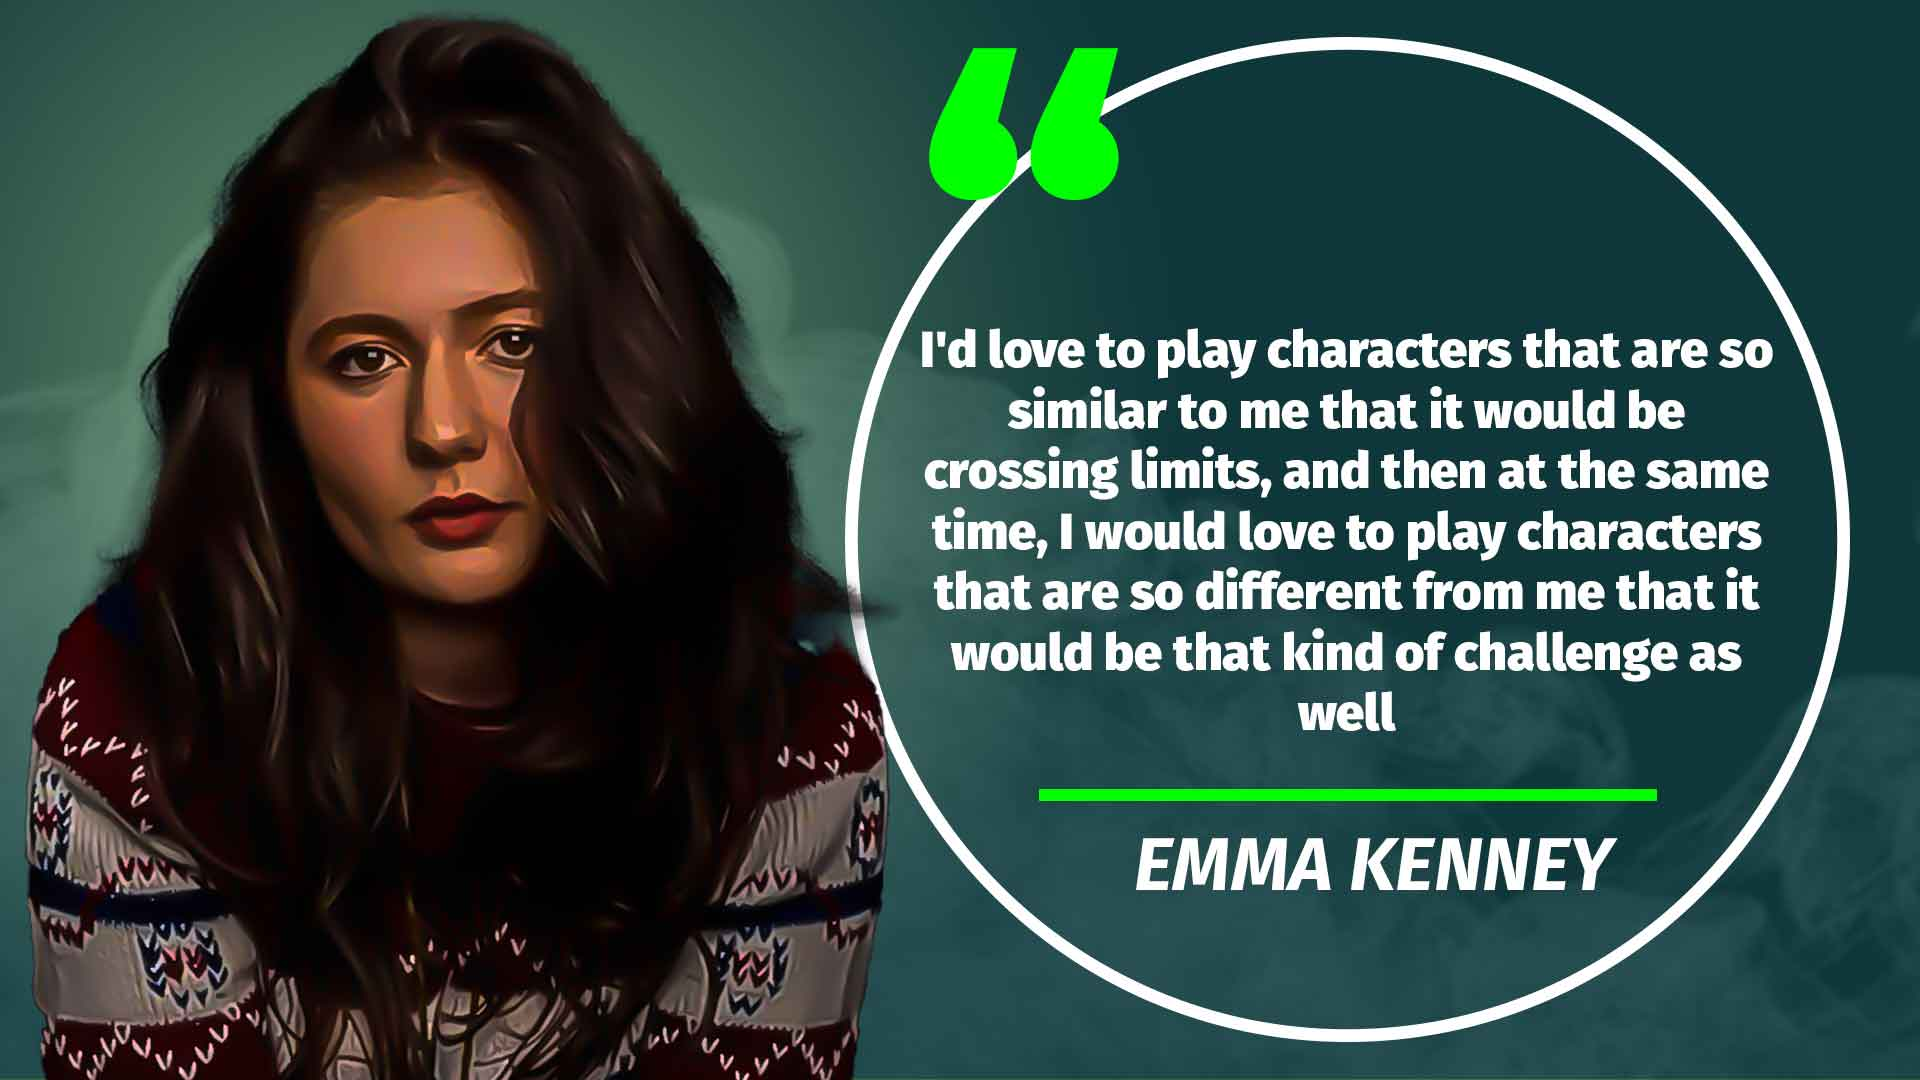 emma kenney QUOTE 1